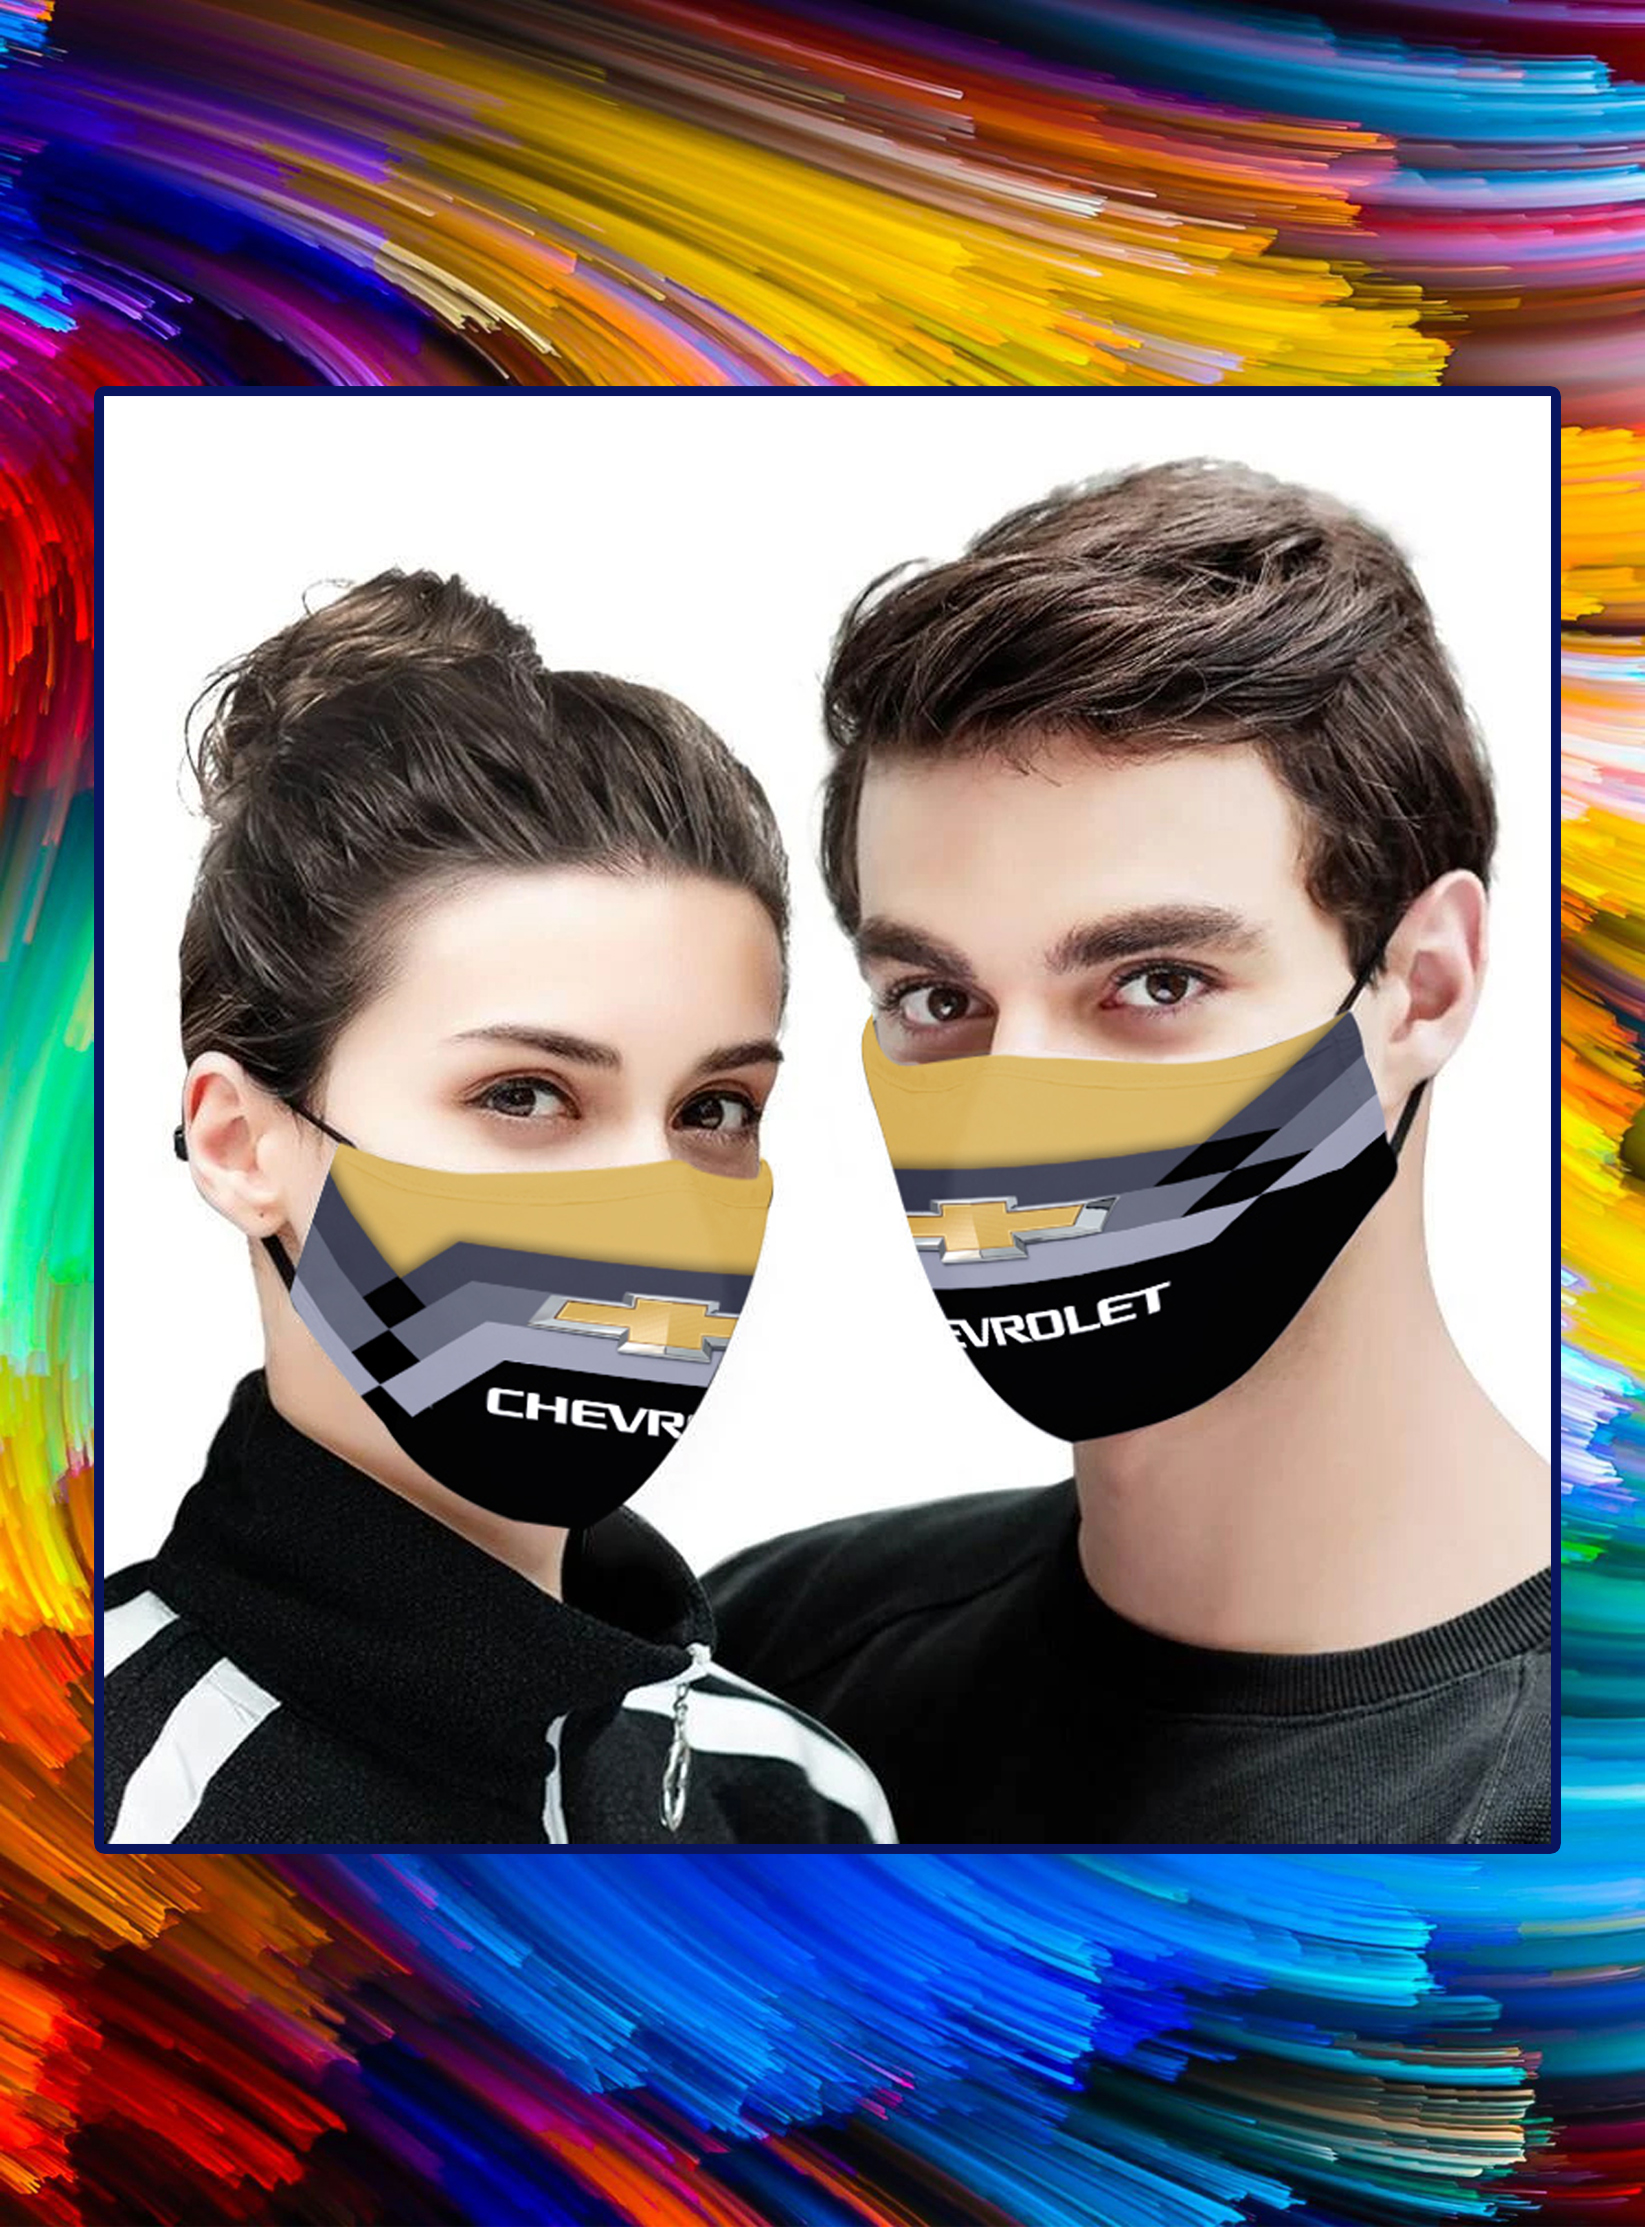 Chevrolet face mask - pic 1